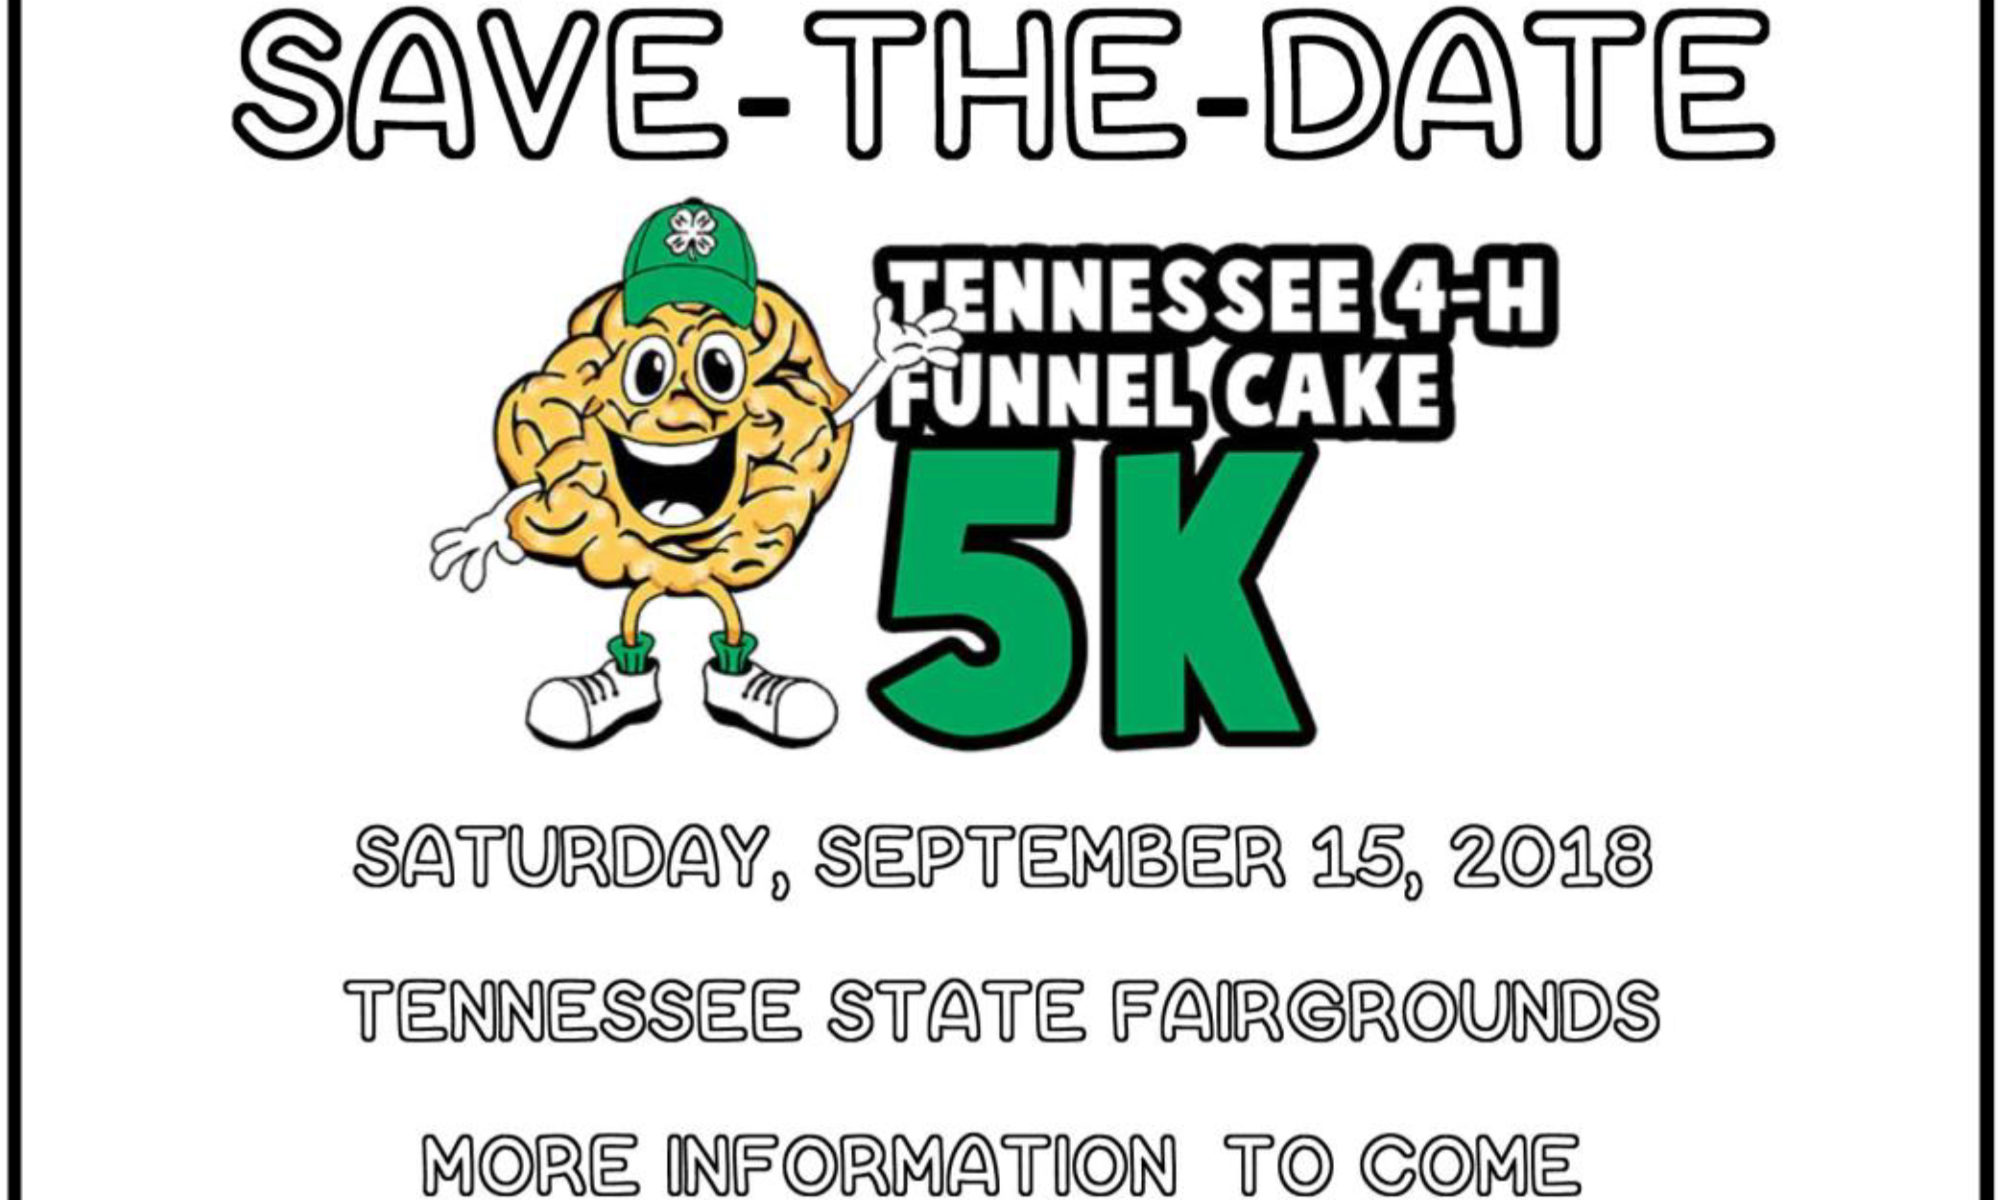 Save-the-Date: Tennessee 4-H Funnel Cake 5K